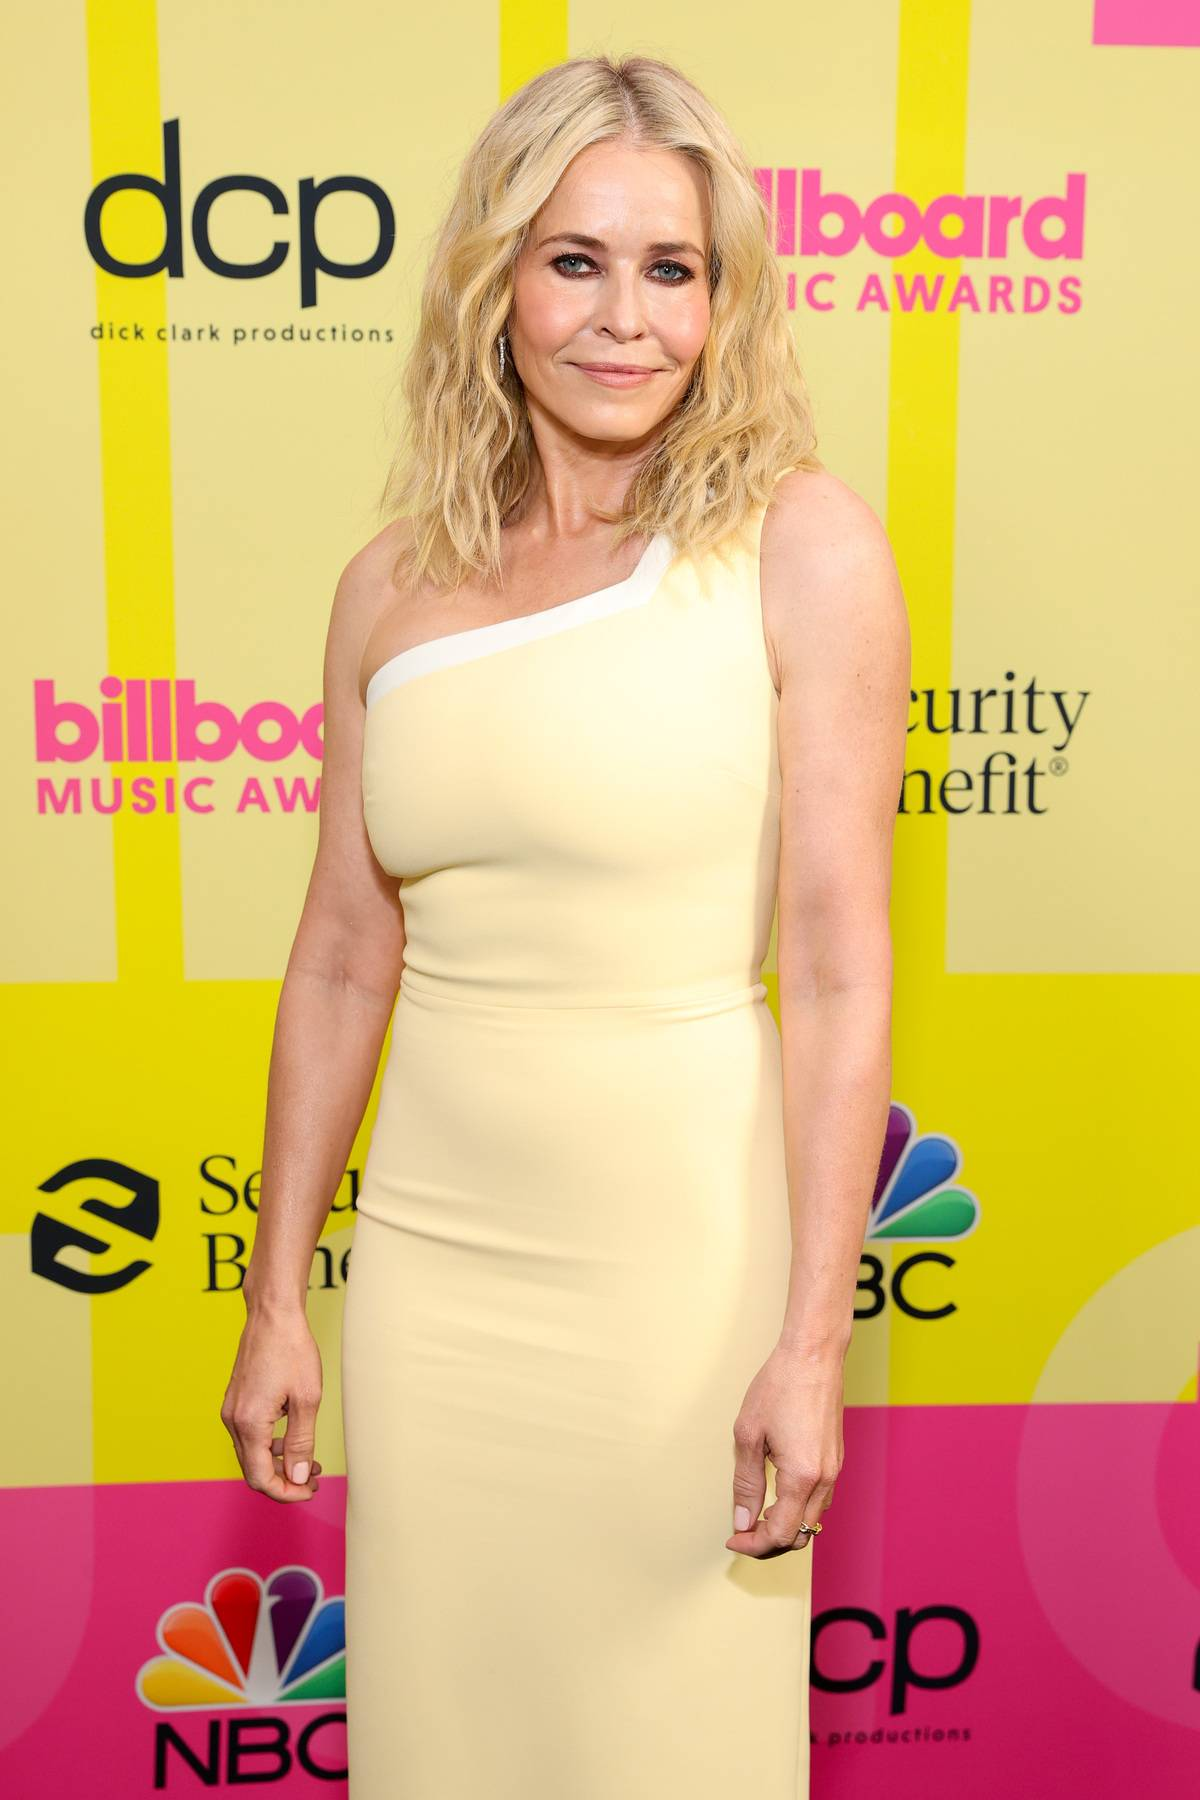 LOS ANGELES, CALIFORNIA - MAY 23: Chelsea Handler poses backstage for the 2021 Billboard Music Awards, broadcast on May 23, 2021 at Microsoft Theater in Los Angeles, California